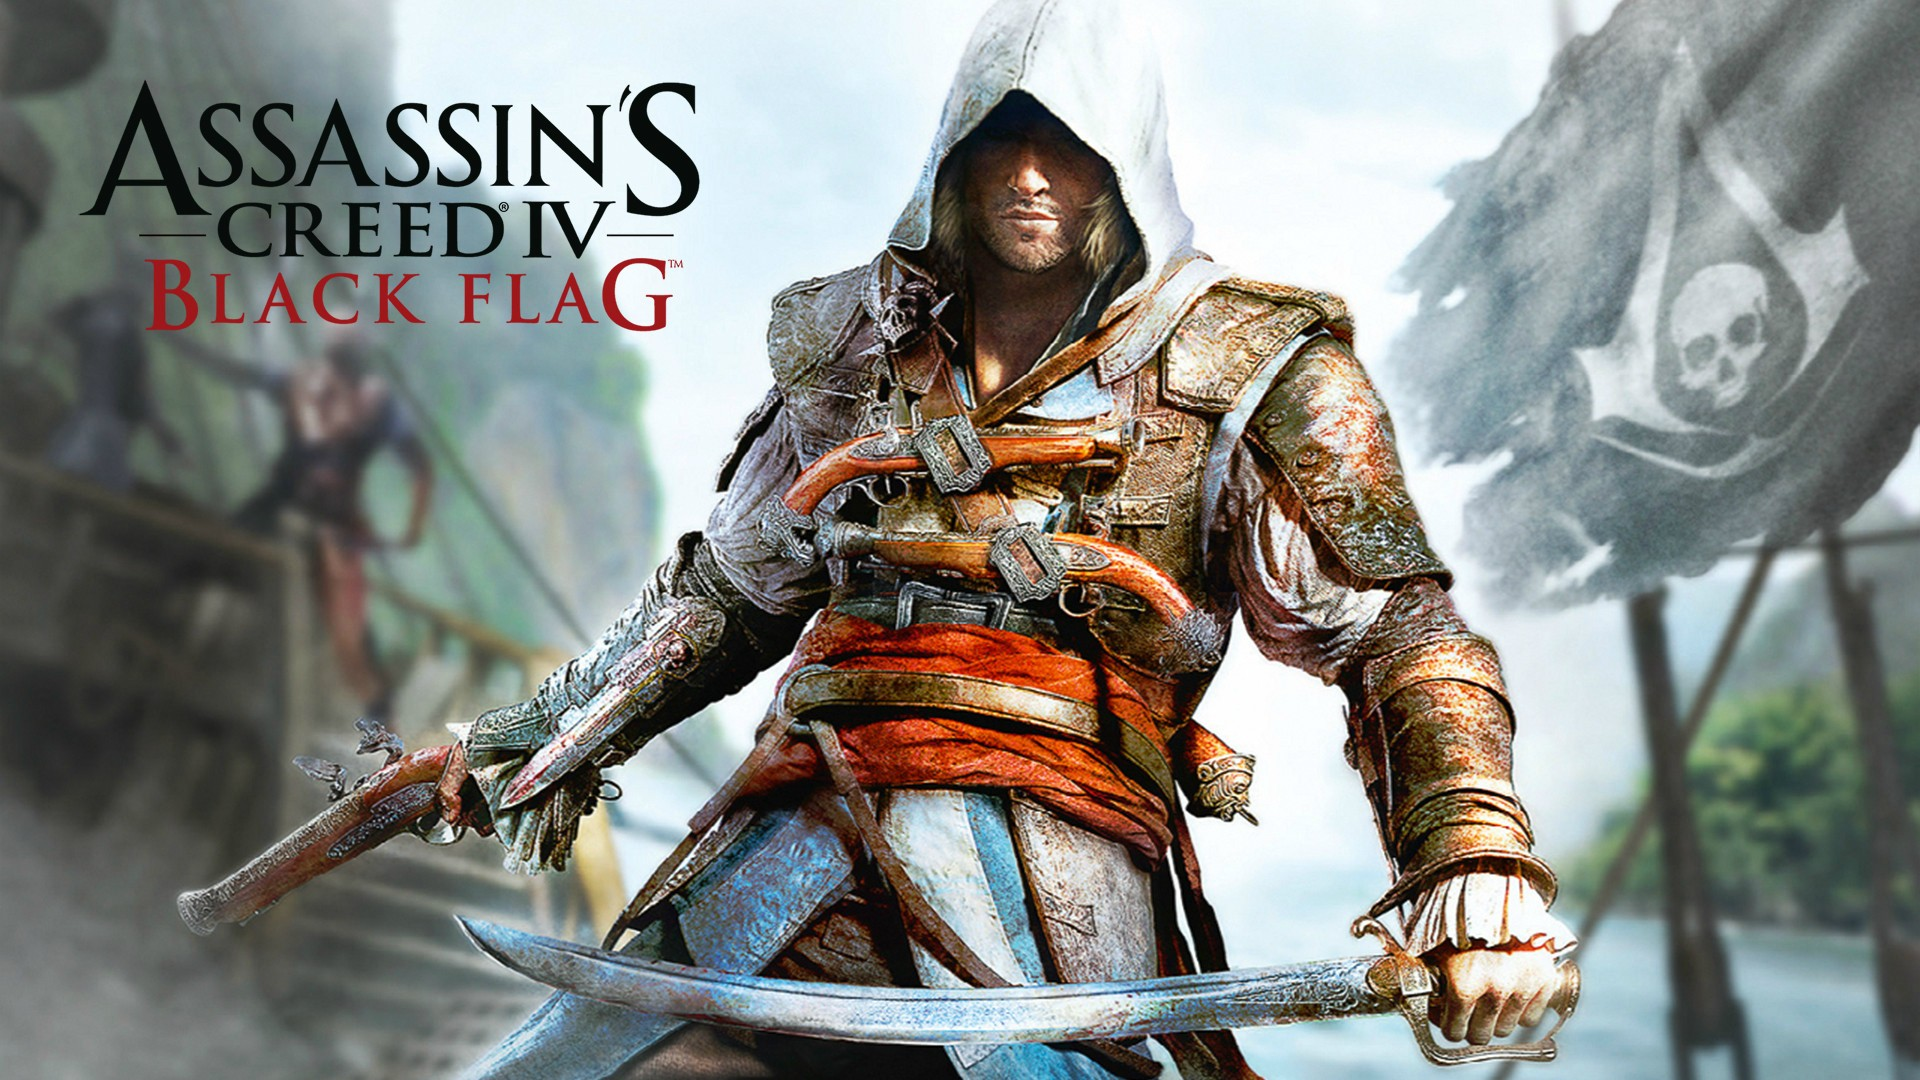 Gaming wallpaper games assassin's creed black flag